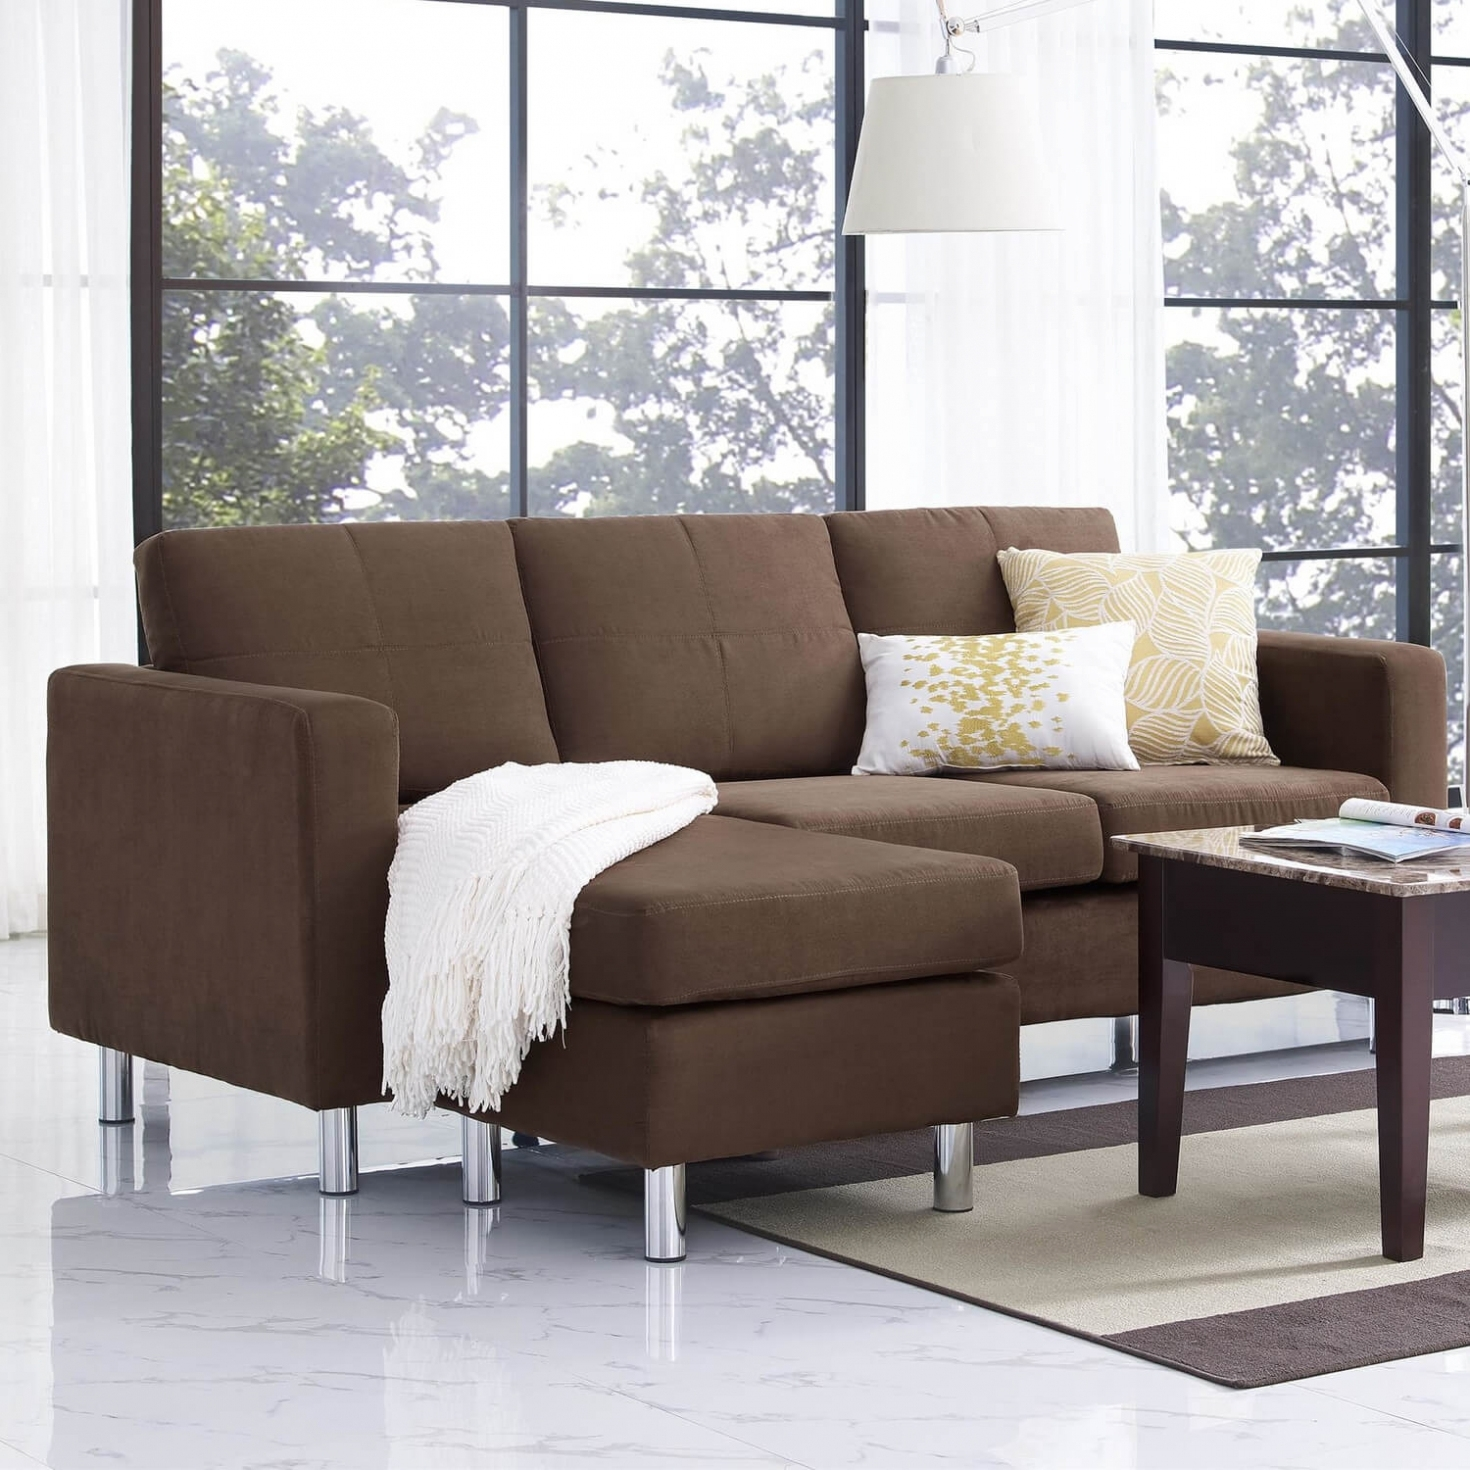 Furniture: Sofas : Amazing Cheap Couches Sectional Sofa Bed Living intended for Sectional Sofas Under 400 (Image 3 of 15)